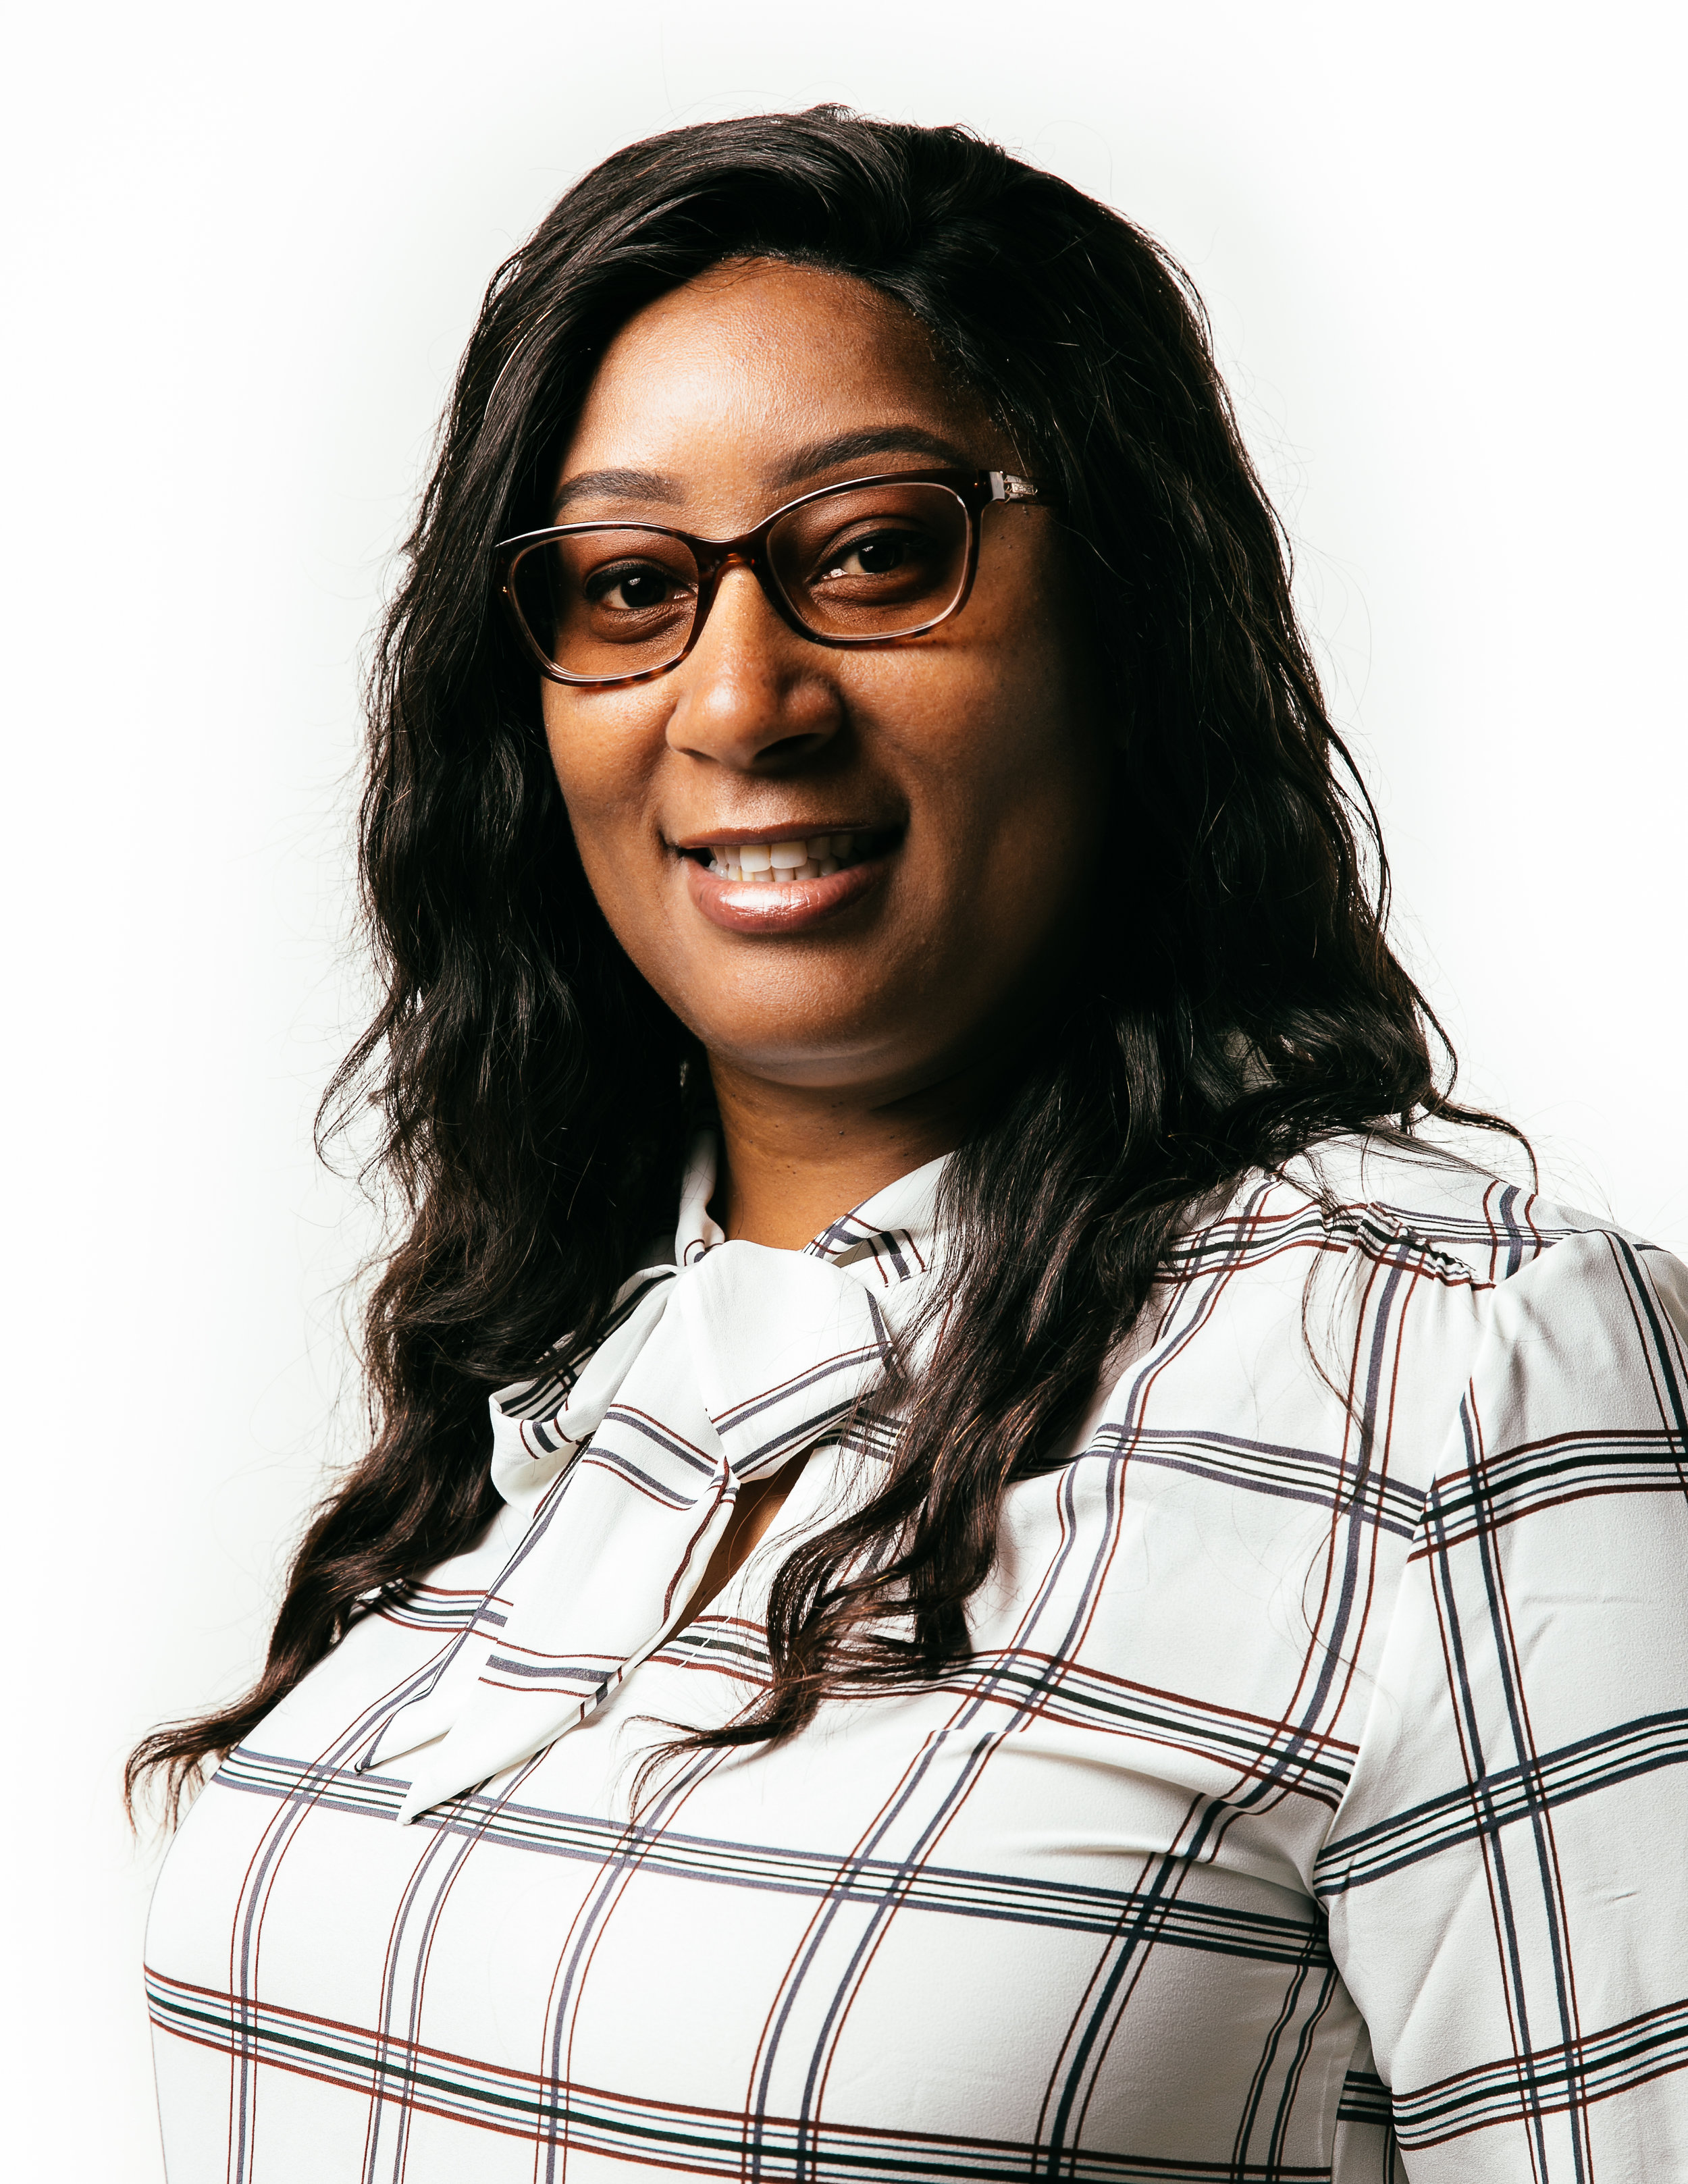 Latasha Reed - Regional Property ManagerLatasha comes to Riaz Capital with a lengthy background Property Management and Leadership.She started her career in Southern, Ca. as a Leasing Director. She has worked with various companies, large and small. She attended school at SB Valley College studying Administration of Justice for probation. She soon realized that was not her desired career path and changed pace. She felt better suited in the Social Service and Customer service sector and found her spot in Real Estate and is currently studying for her Real Estate License. Latasha is very passionate about human kindness and personal growth. She enjoys helping the community and supporting organizations that recognize the need for housing in Bay Area at an affordable price. In her spare time, you can find her reading novels and enjoying a cup of coffee.